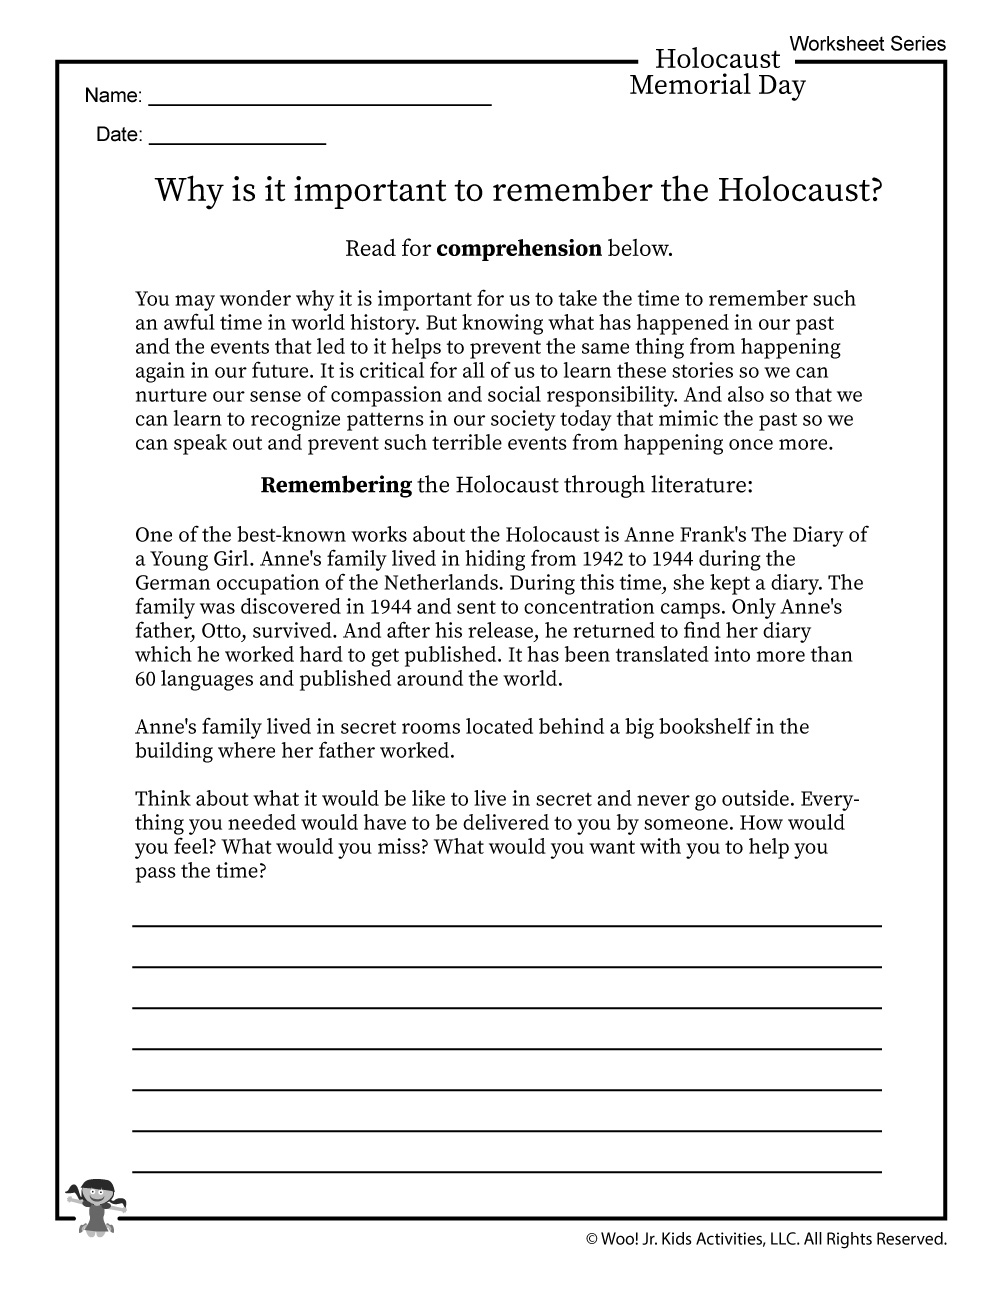 Remembering Anne Frank Worksheet | Woo! Jr. Kids Activities | Holocaust Printable Worksheets